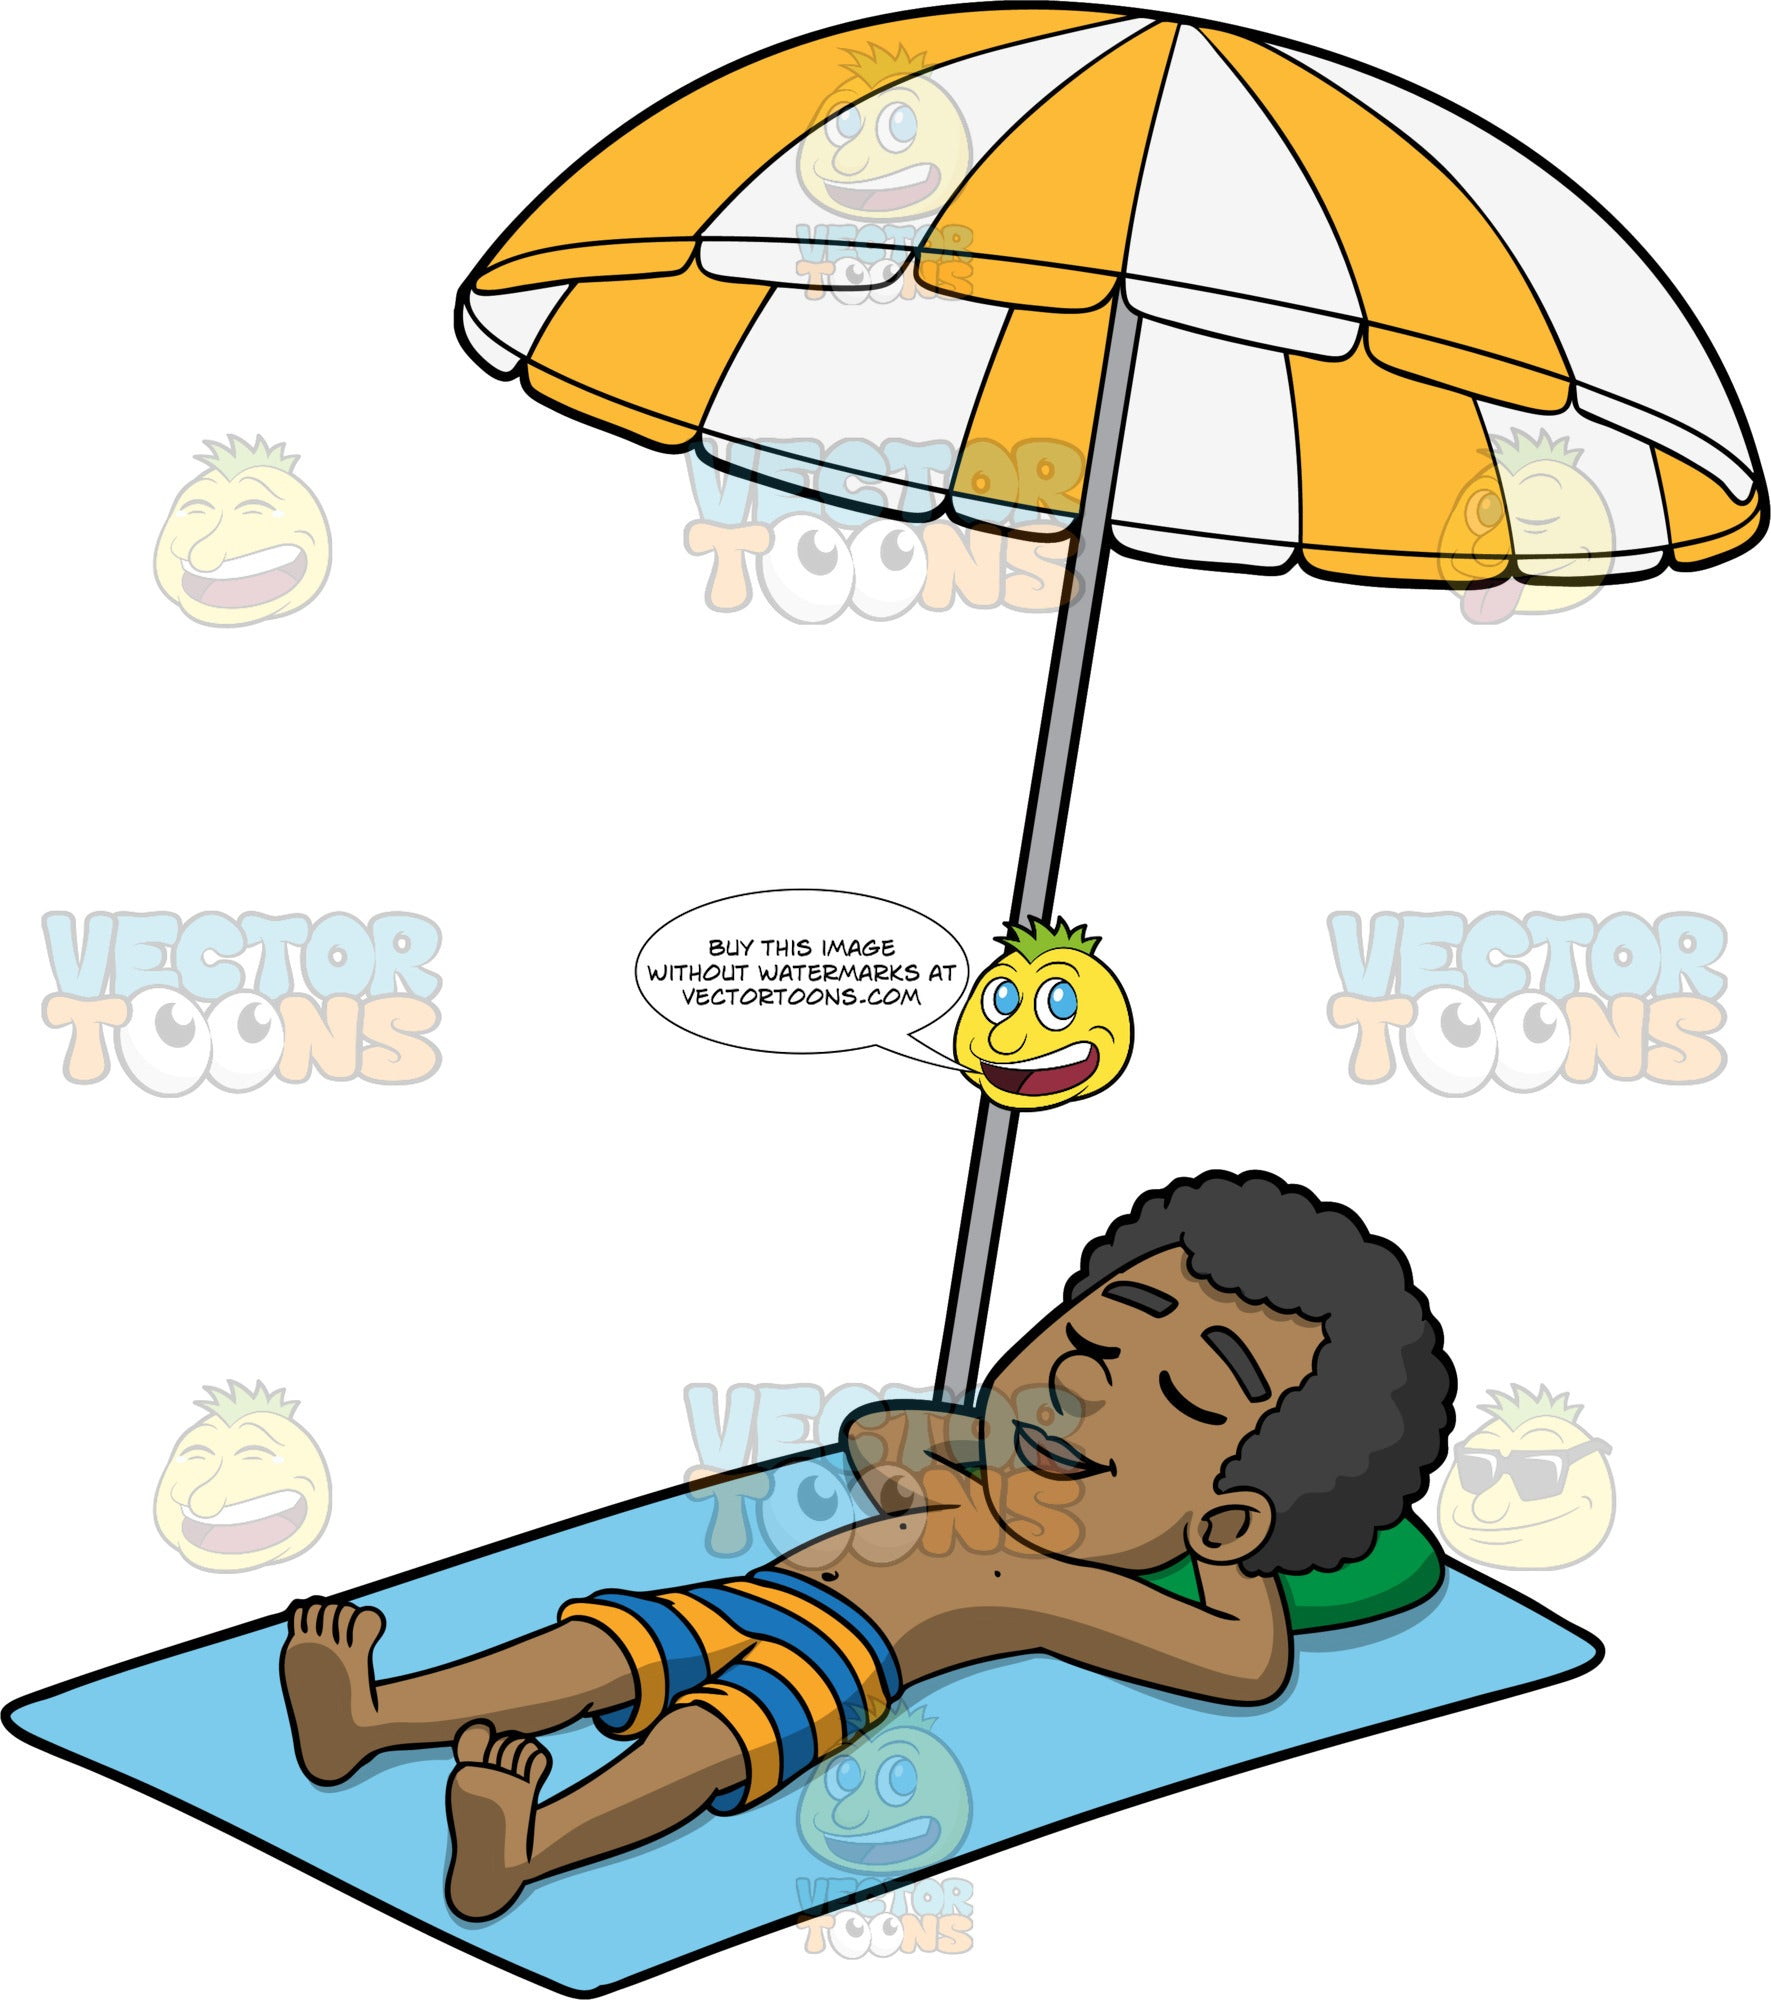 Jimmy Enjoying A Day In The Sun. A black man wearing orange and blue striped swim trunks, lying on his back on a blue beach towel under a yellow and white striped umbrella, with his eyes closed and his hands behind his head